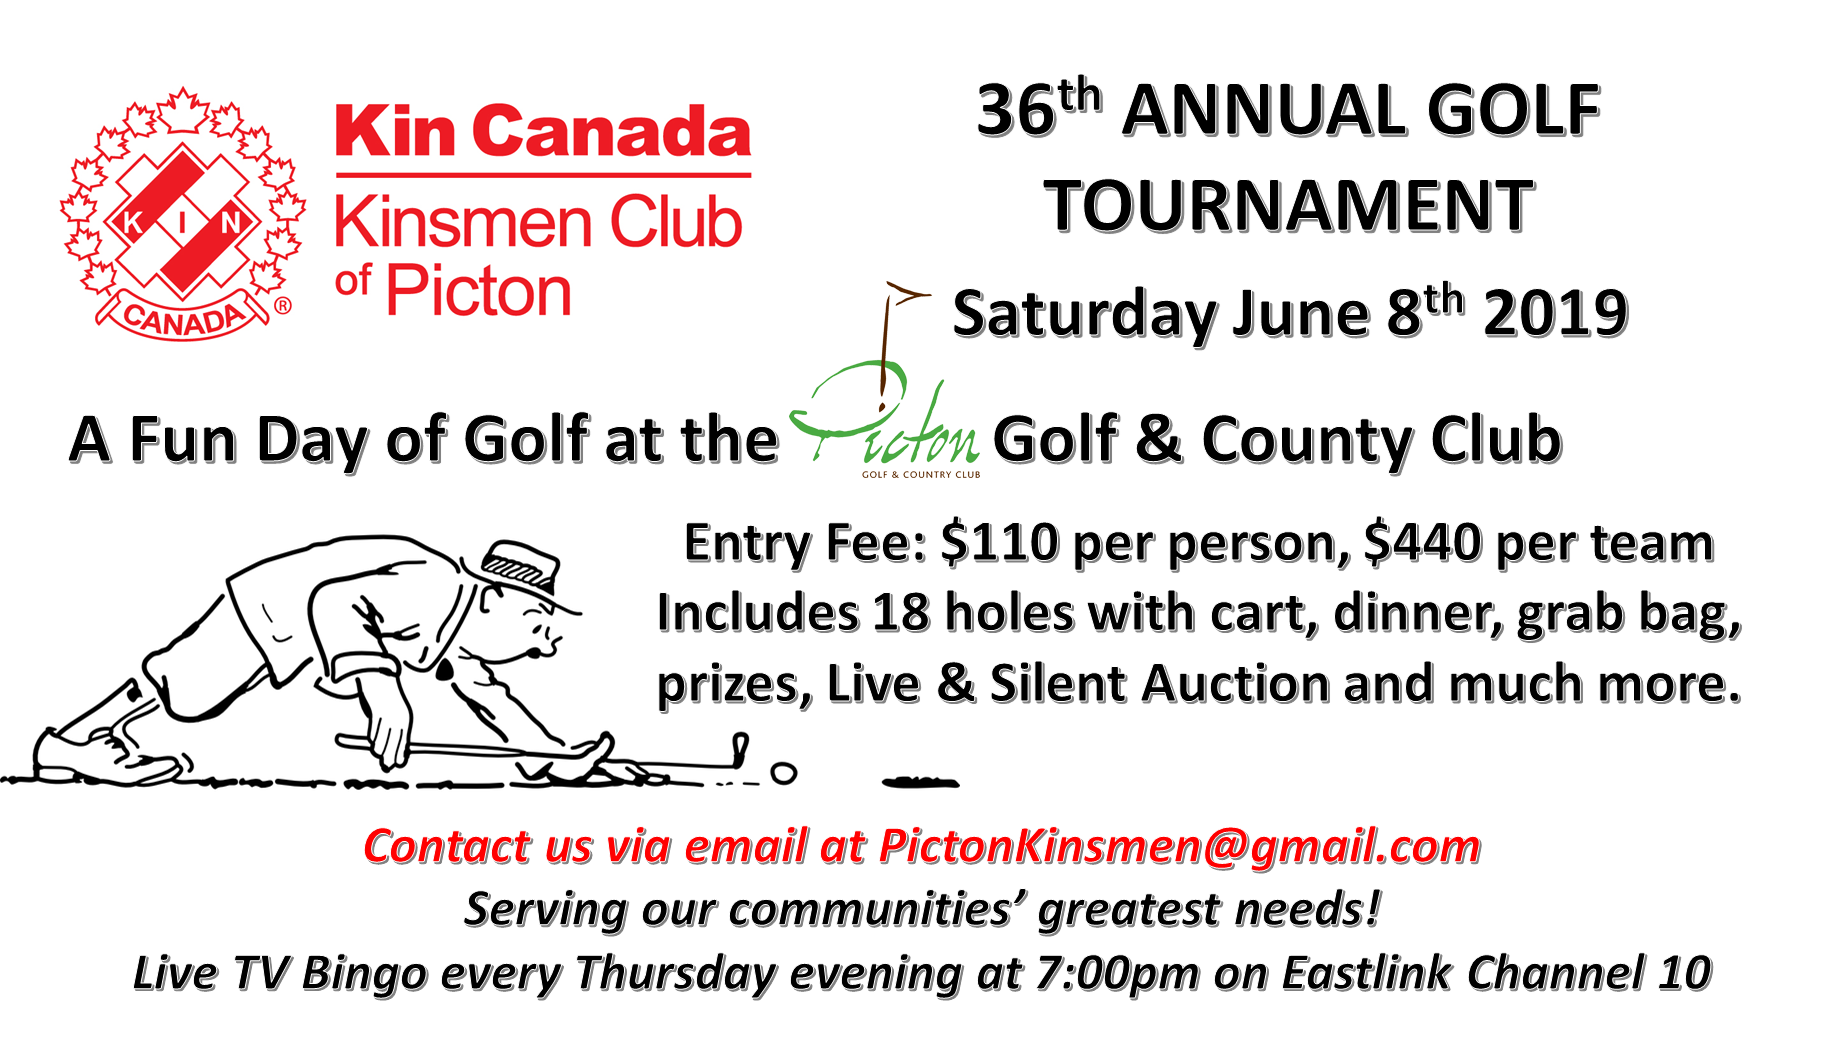 36th Annual Golf Tournament